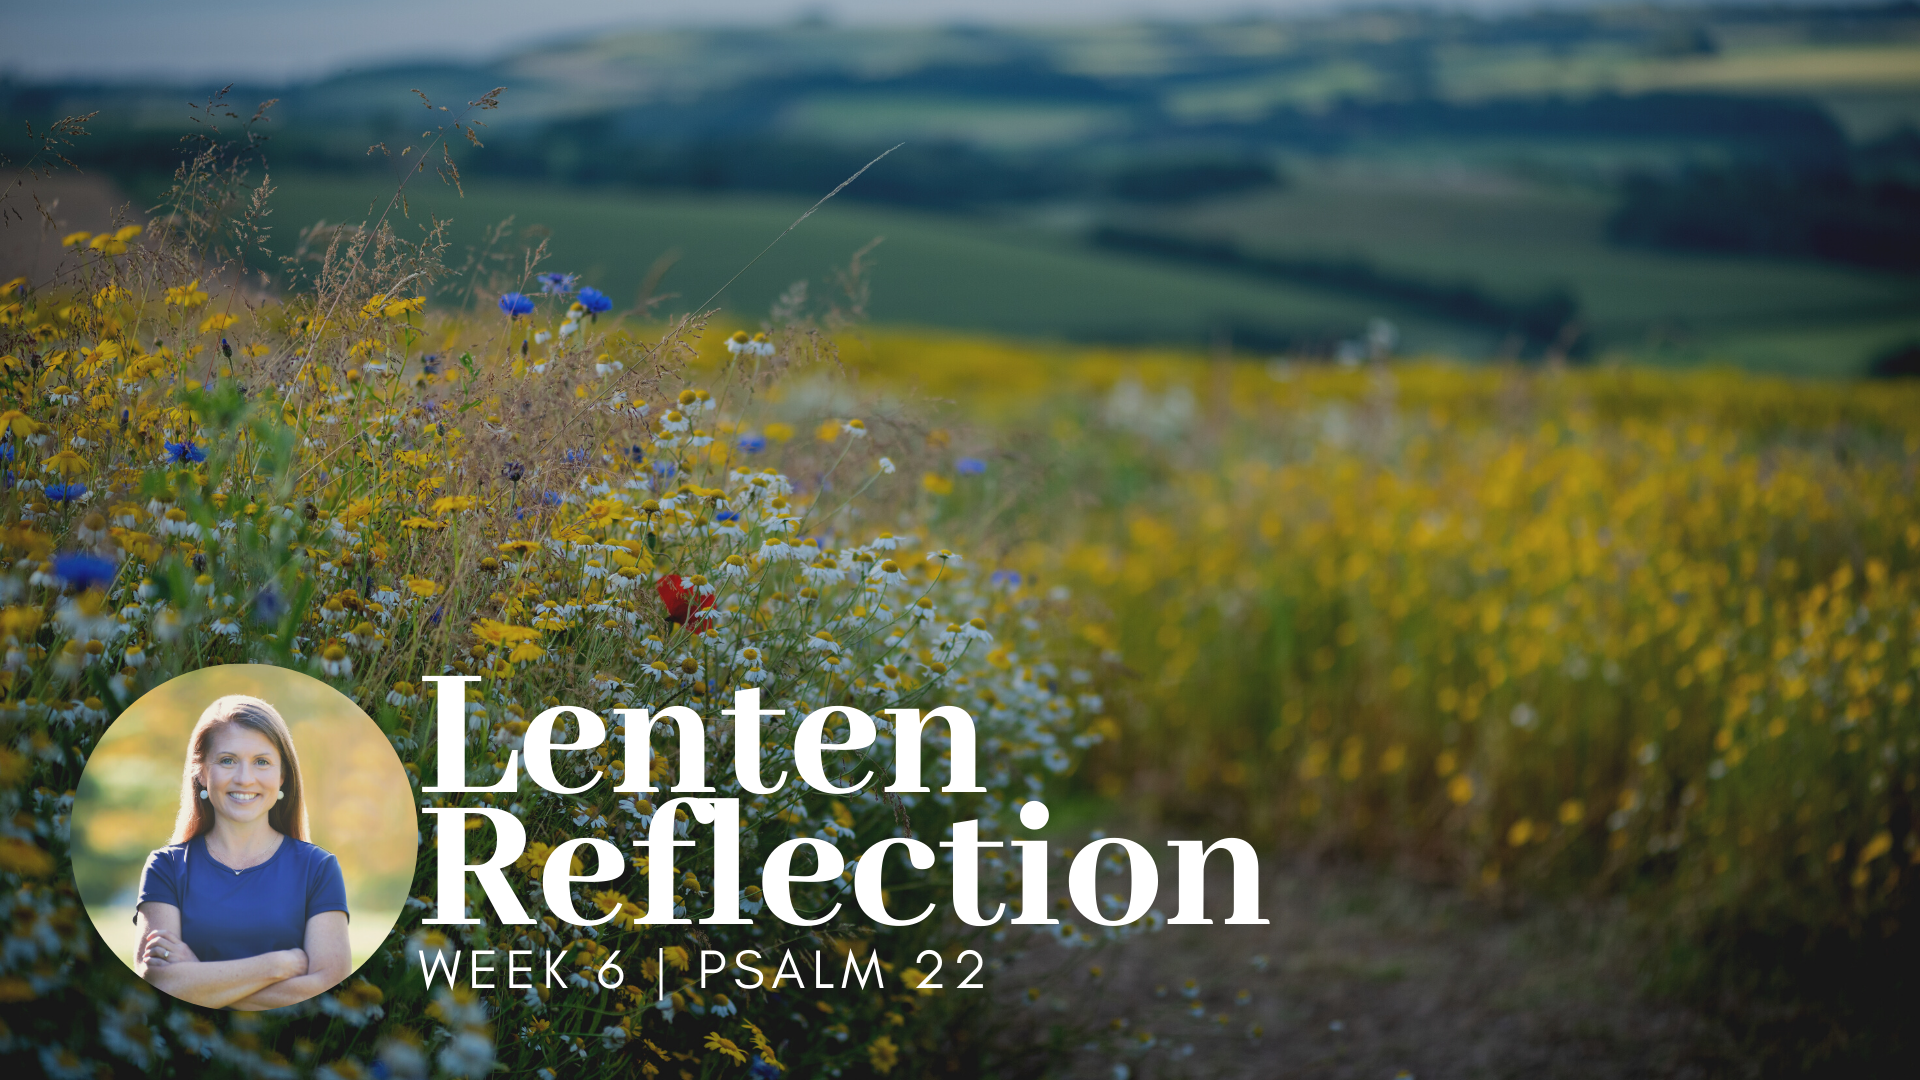 picture of path through mountain flowers; has white text overlay that says Lenten Reflection Week 6 Psalm 22